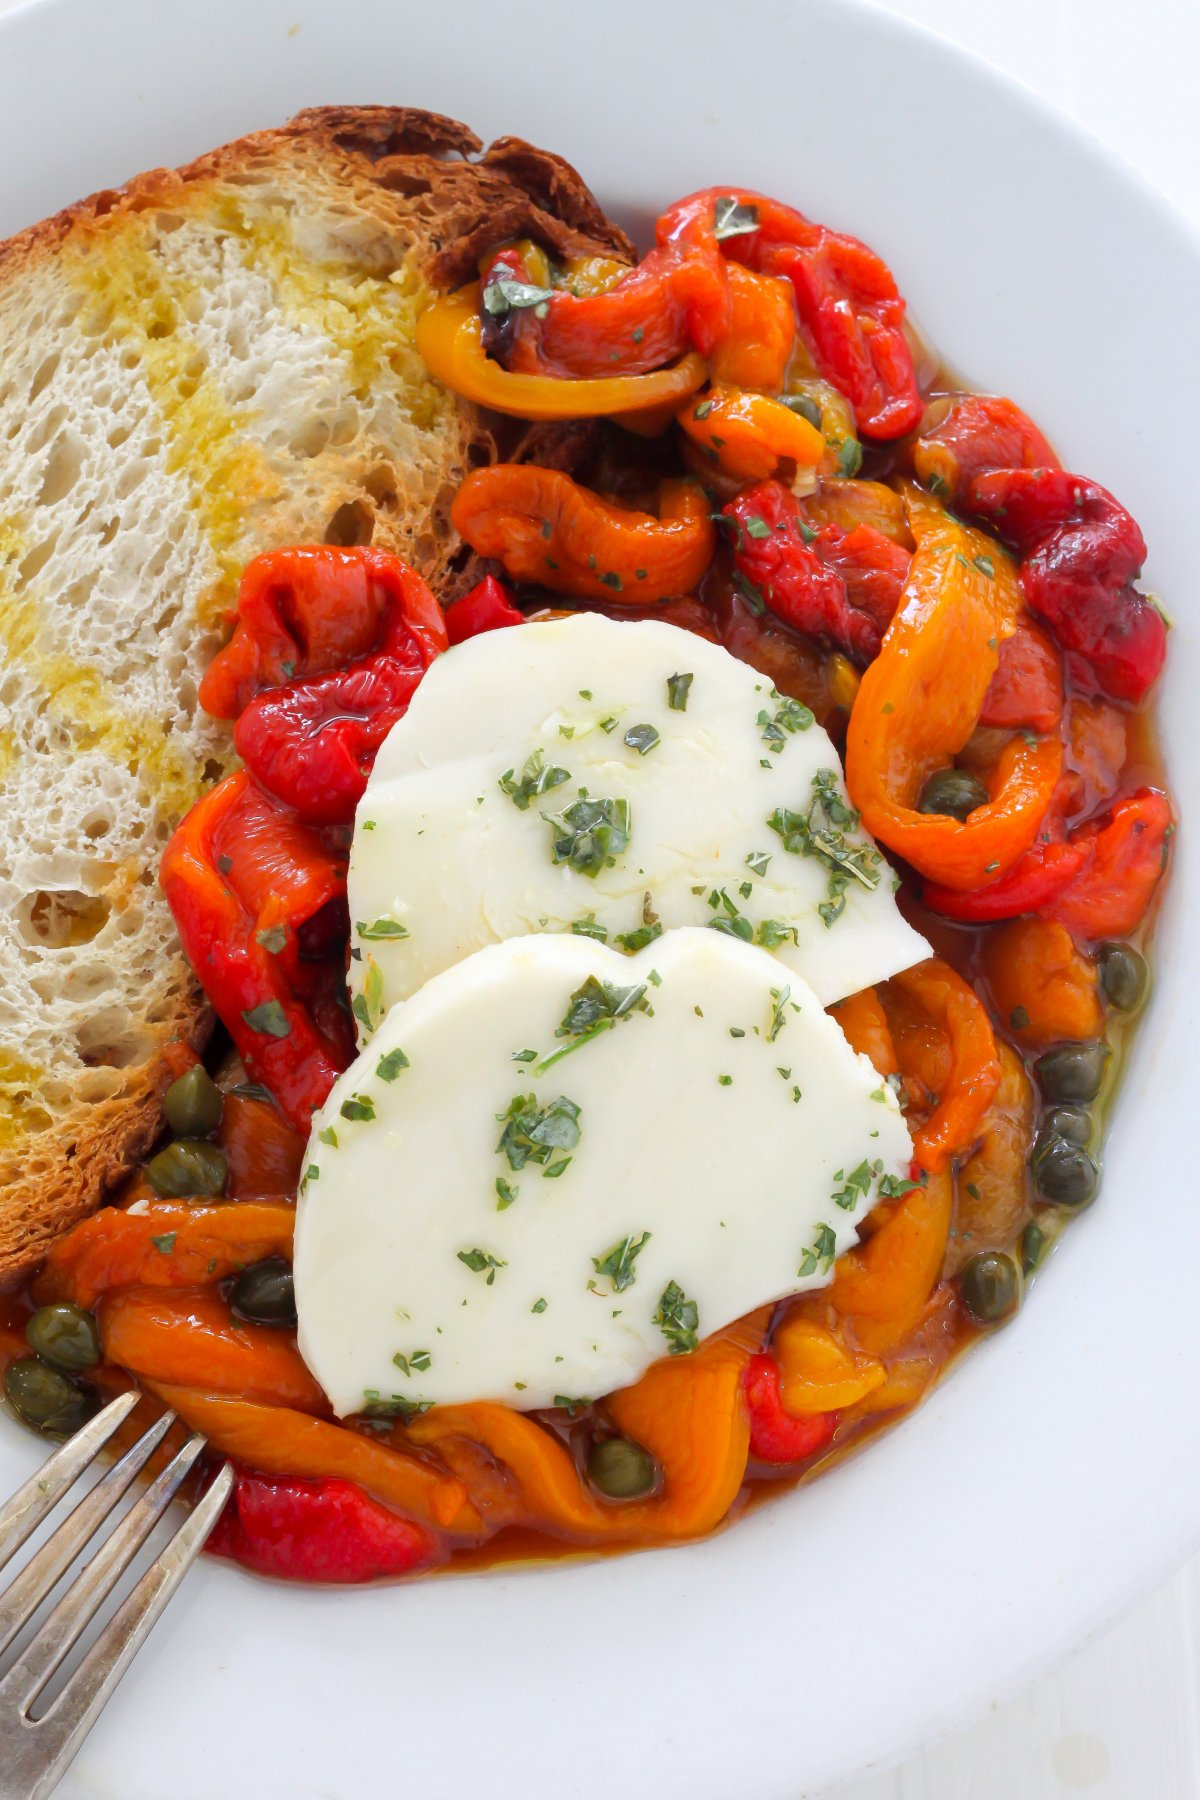 ... with roasted potatoes roasted peppers with nectarines most of the time